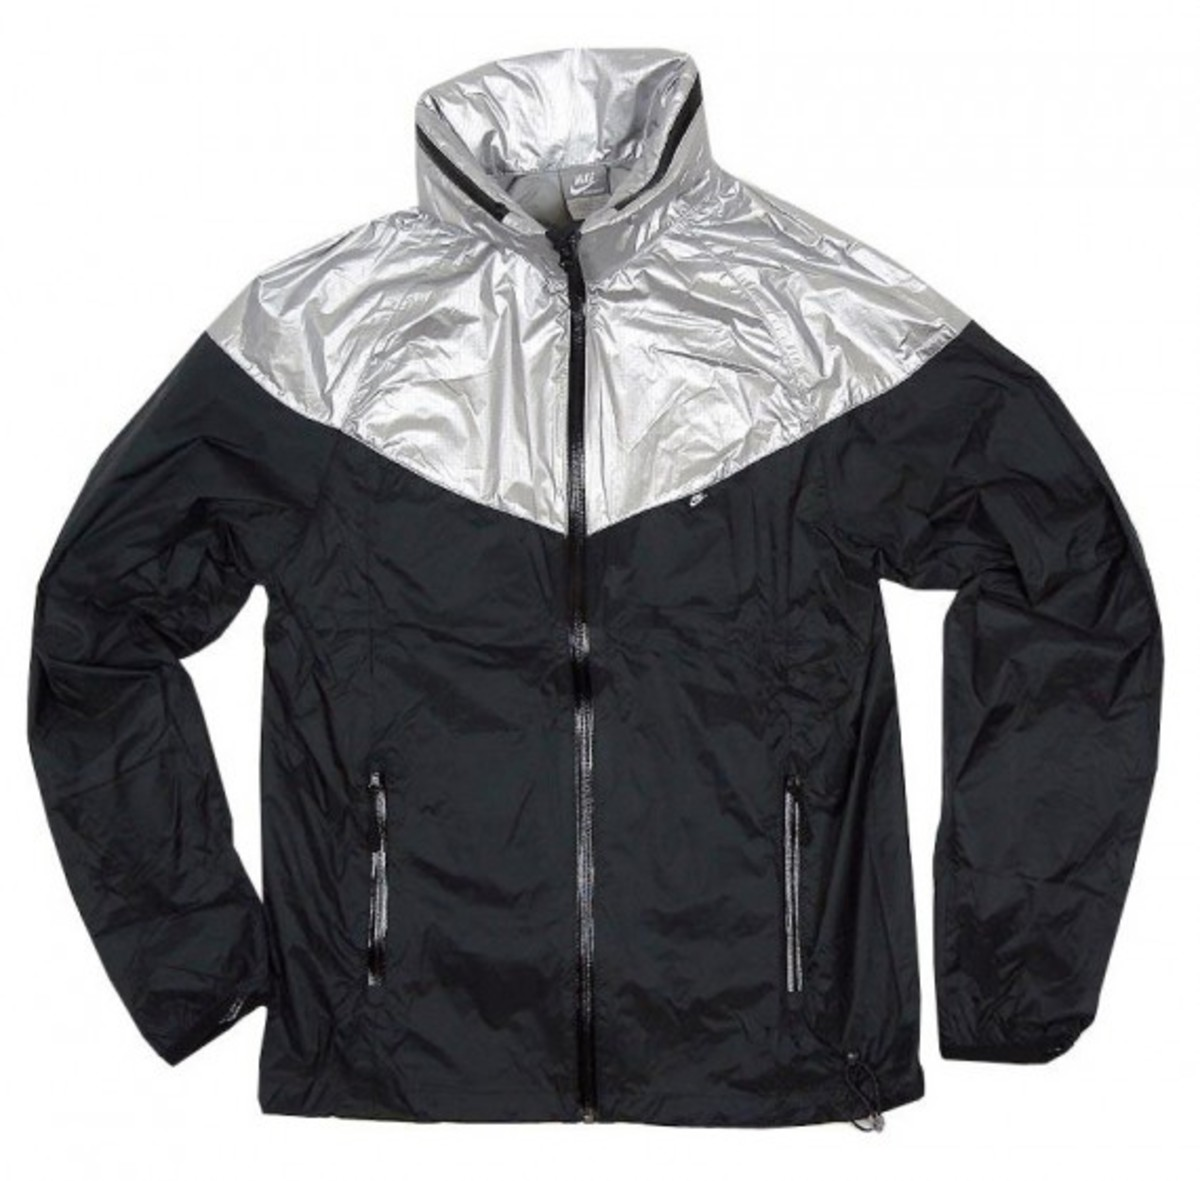 nike-fall-winter-09-cycling-windrunner-jacket-01